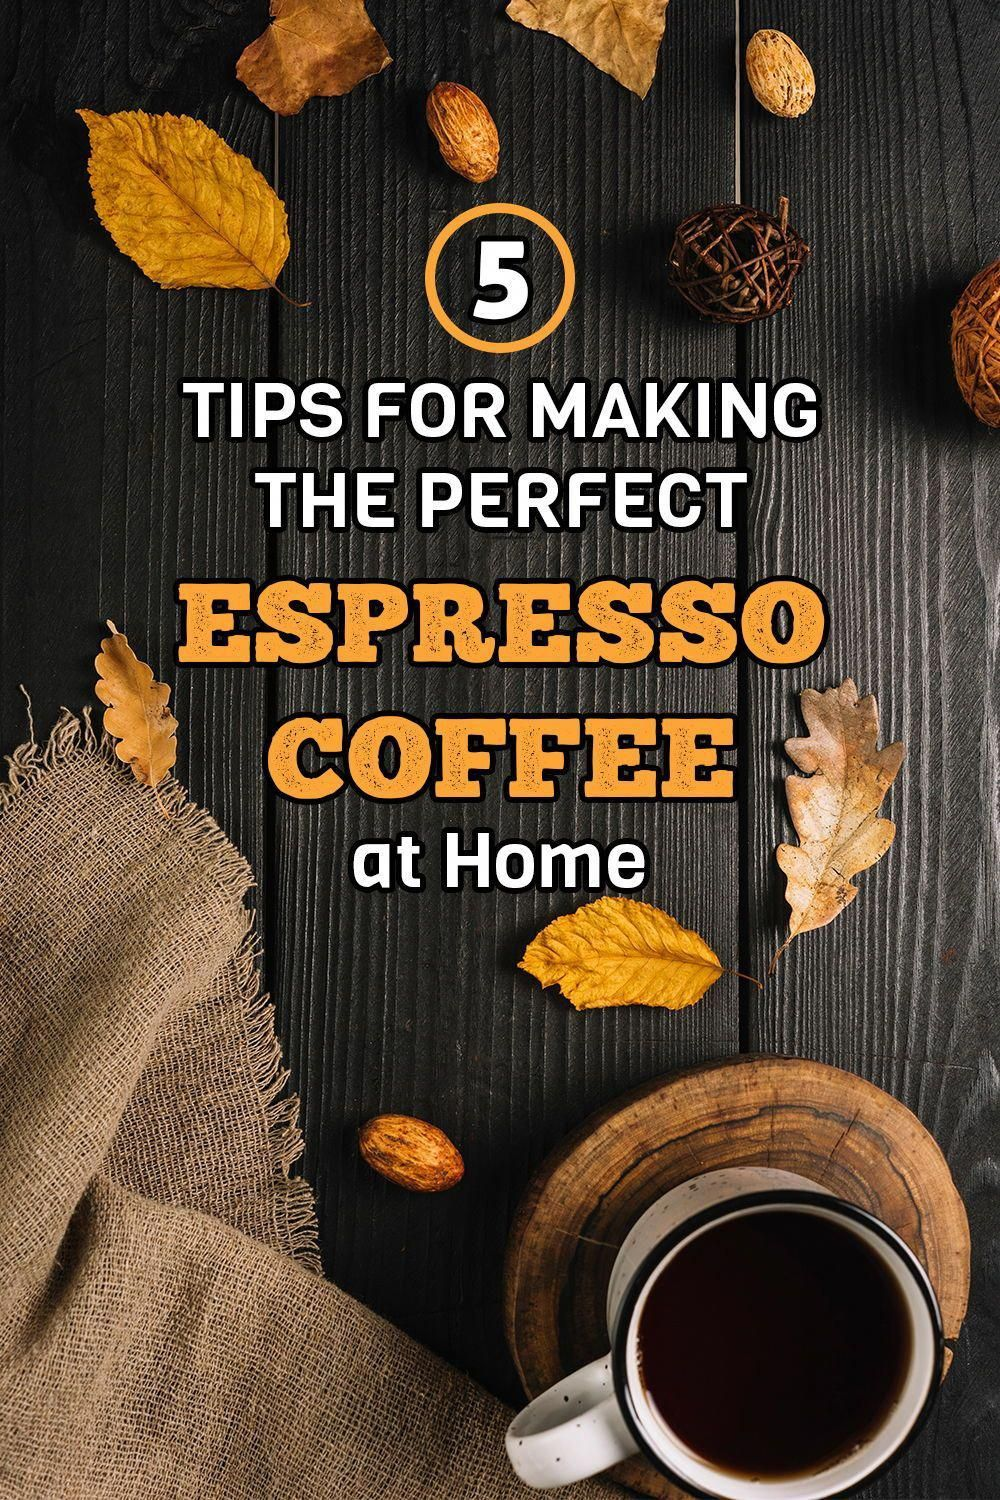 espresso making tips, how to make espresso coffee at home, how to make espresso with a french press, how to make the perfect espresso, how to make espresso in a french press, how to make espresso french press, espresso tips, espresso crema tips, espresso coffee at home, make espresso with french press, can you make espresso in a french press, how to make the best espresso at home, make espresso french press, the best espresso coffee, how to make perfect es #espressoathome espresso making tips, h #espressoathome